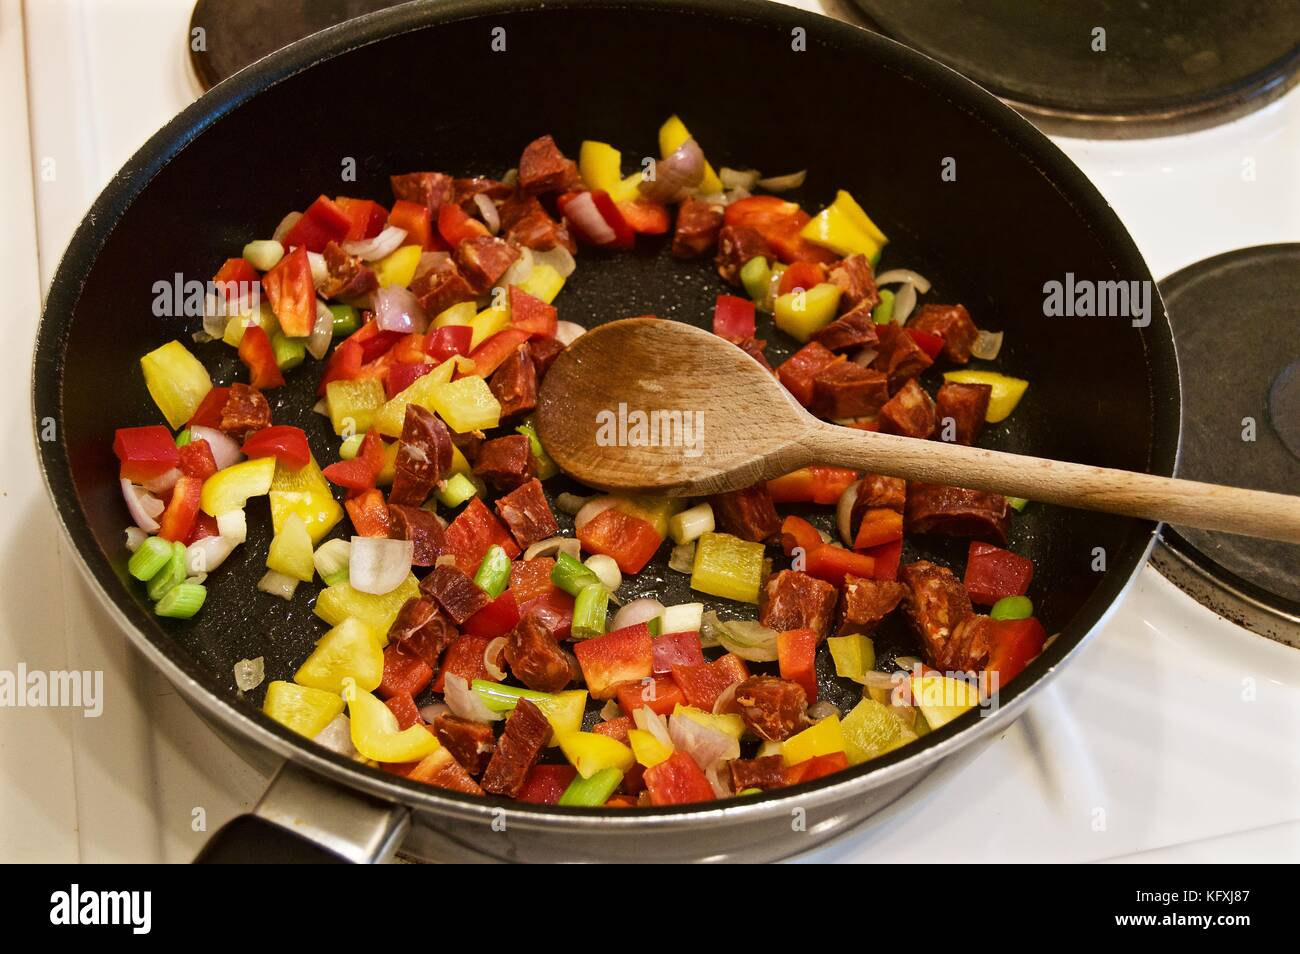 Cooking a seafood paella on the hob in a teflon coated wok with wooden spoon - Stock Image